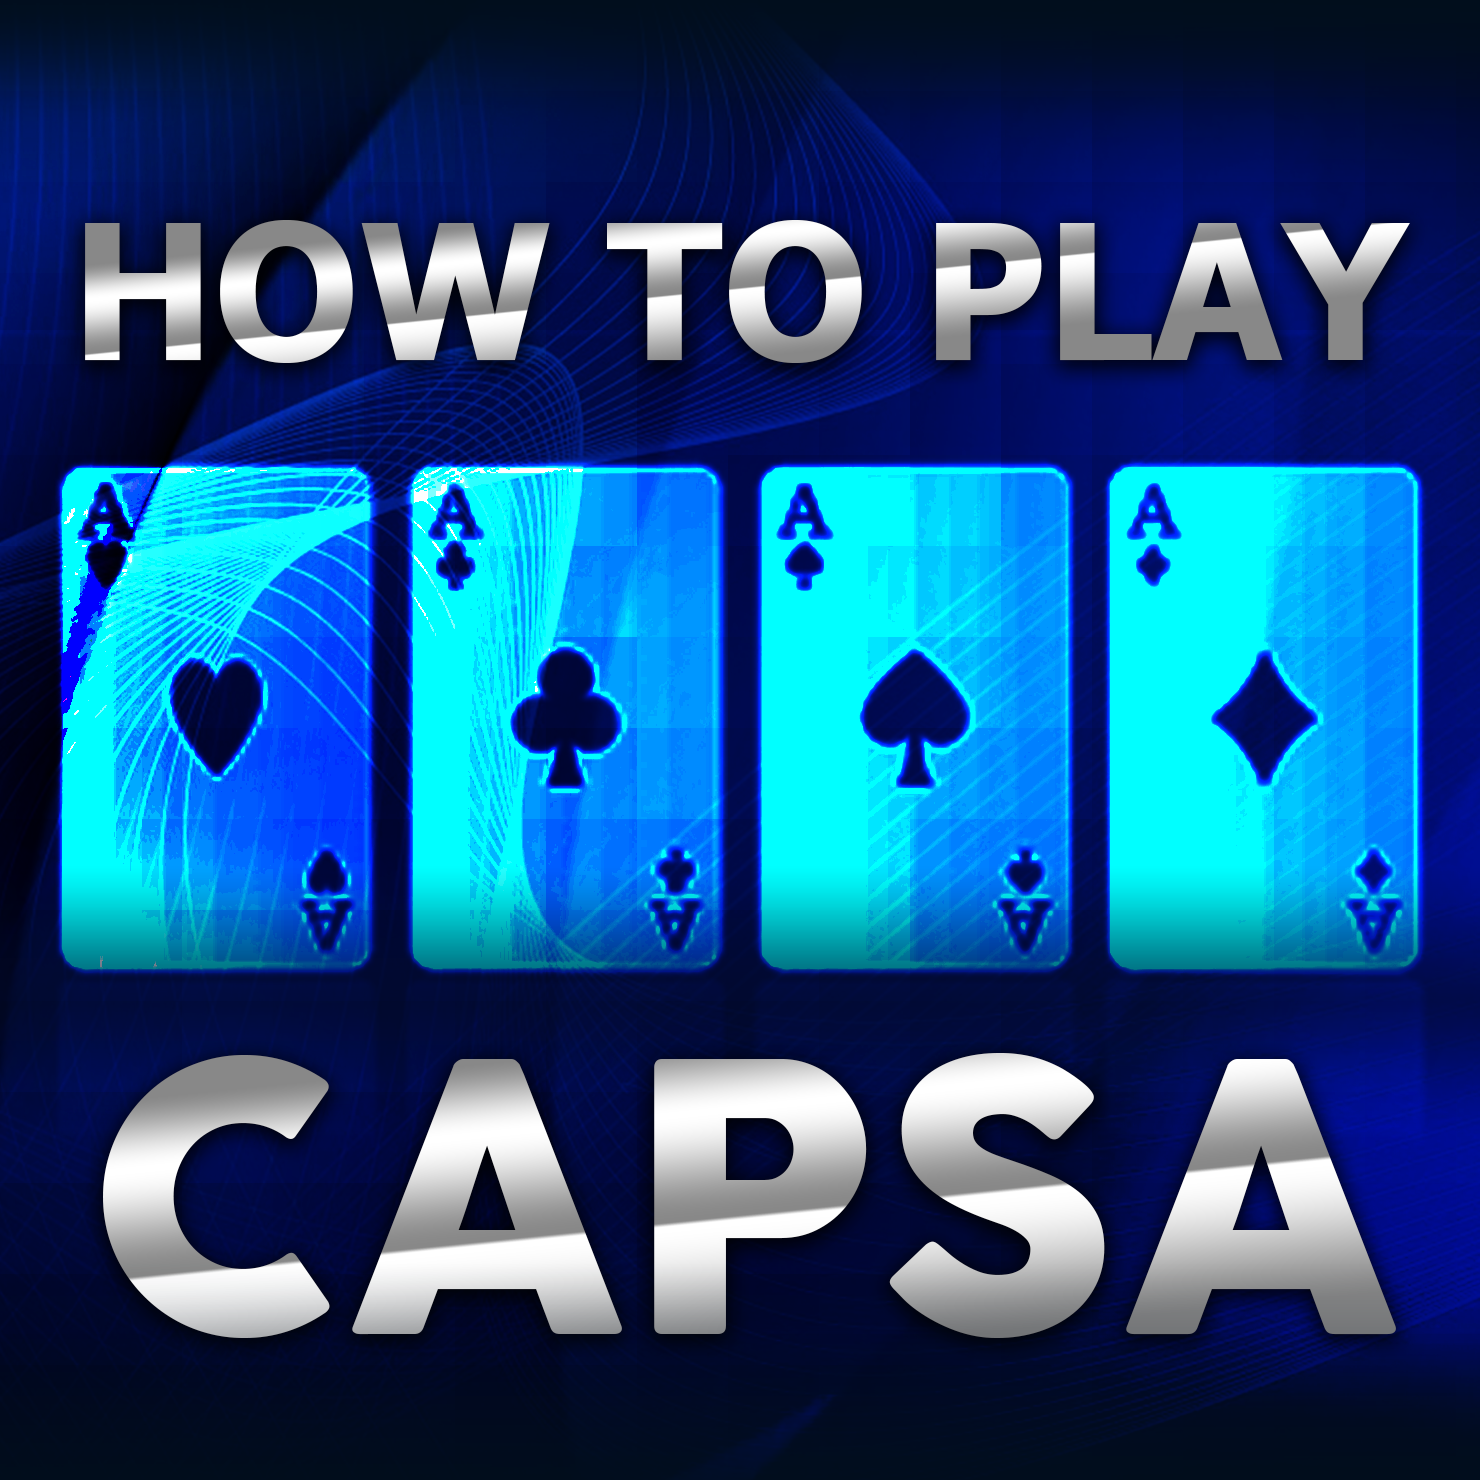 How To Play Capsa